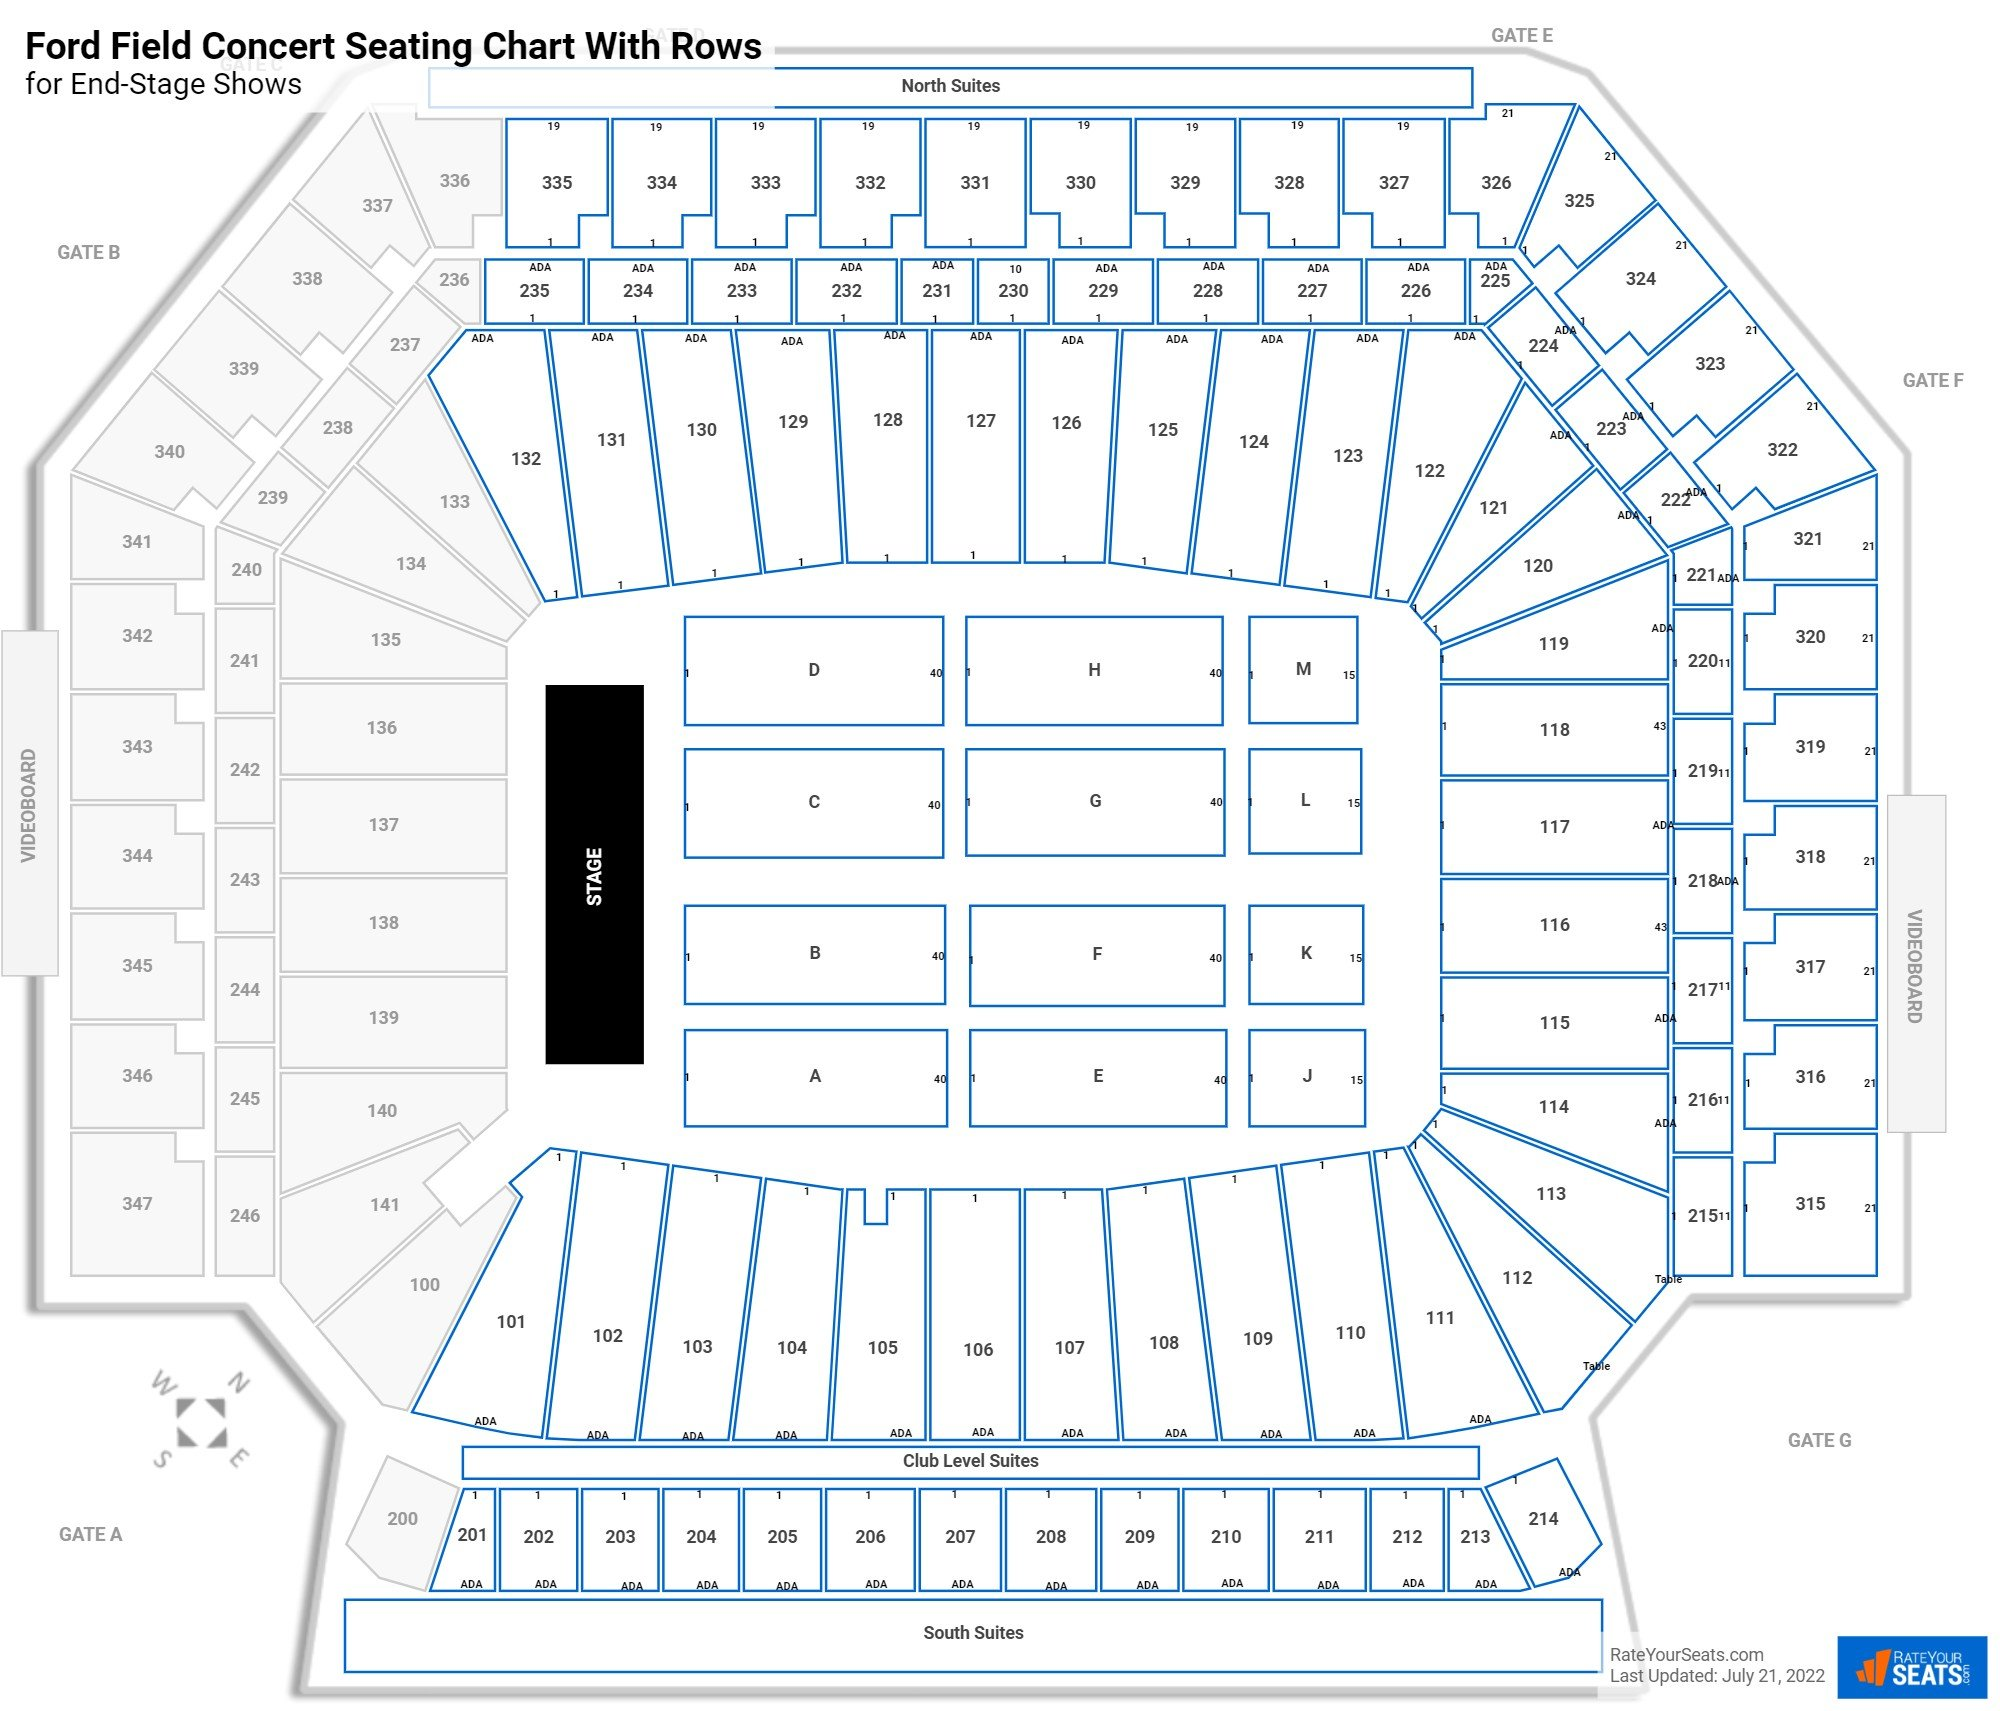 Ford Field seating chart with rows concert